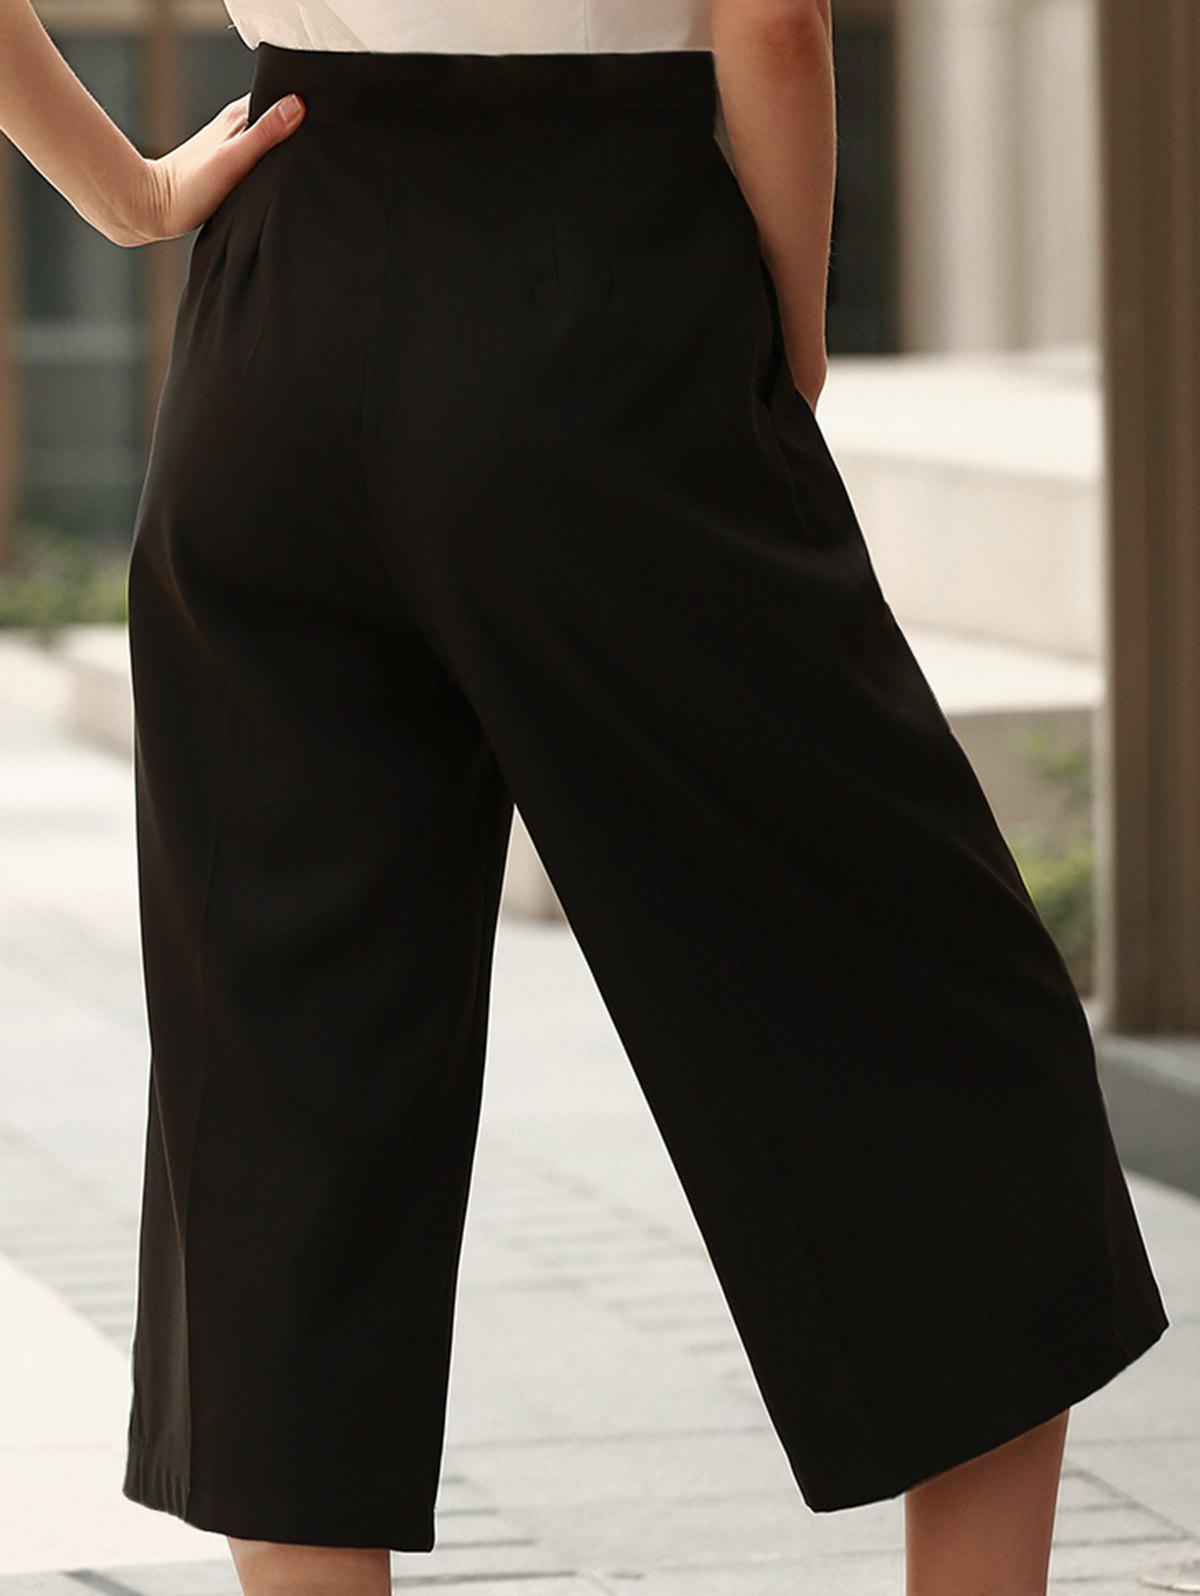 Stylish Mid Waist Loose Fitting Black Women's Capri Pants